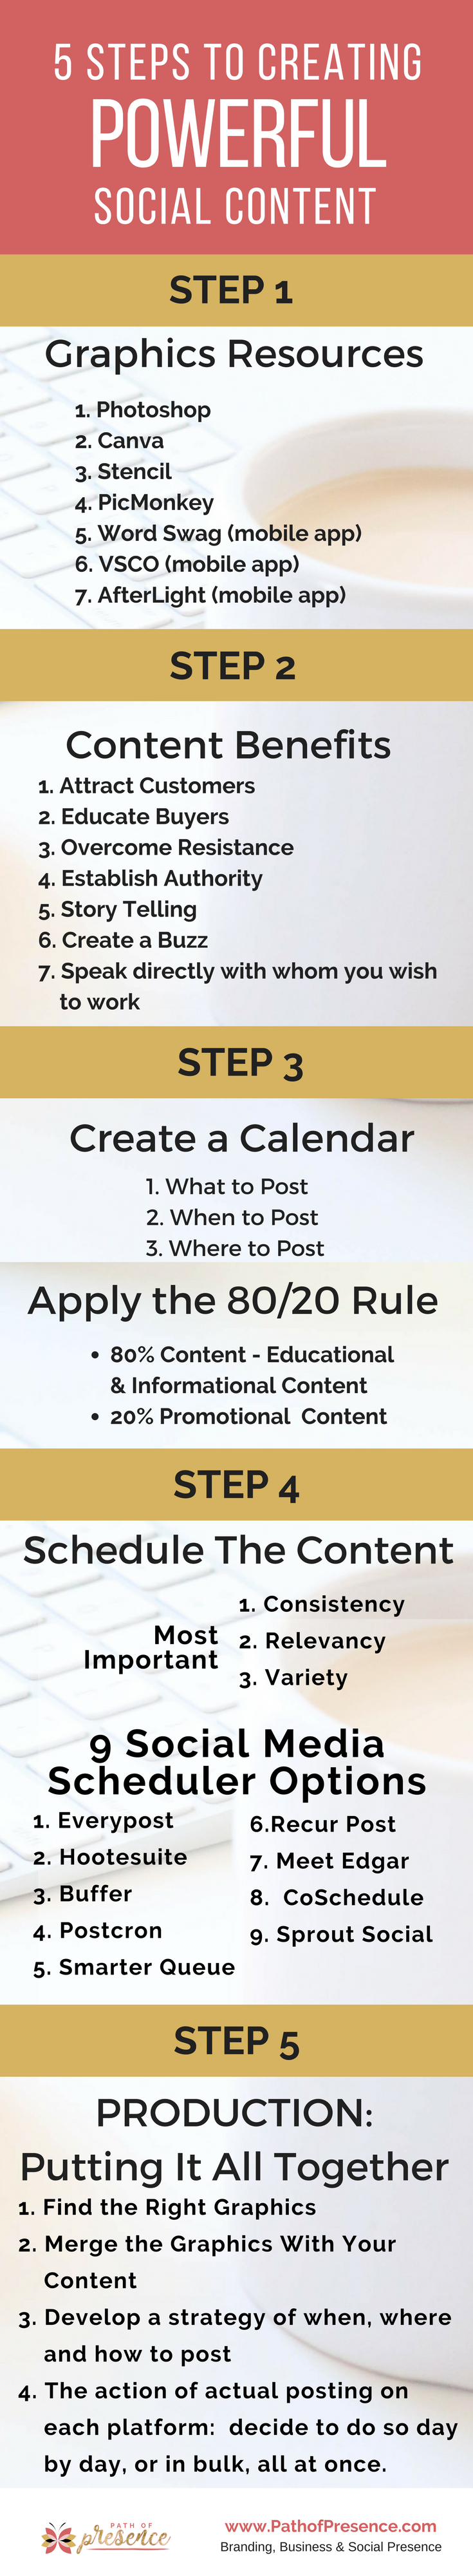 5 Steps to Creating Powerful Social Content // Graphics Resources // SMM // Content Marketing // Social Media Calendar //  Social media Scheduling Options // How to Put It All Together + Downloadable Free Resource and Checklist